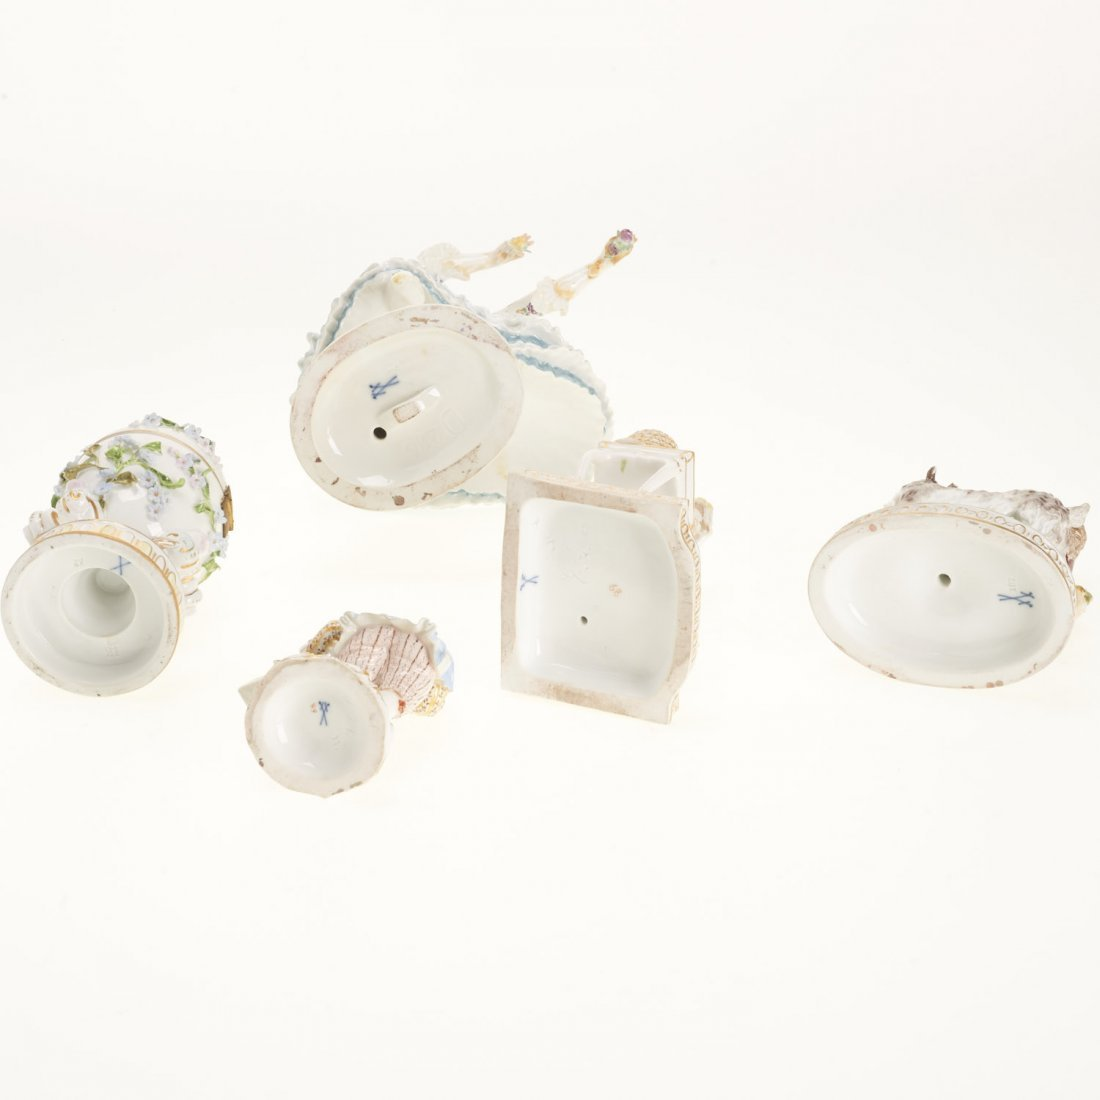 (5) Meissen porcelain figurines and articles - 9